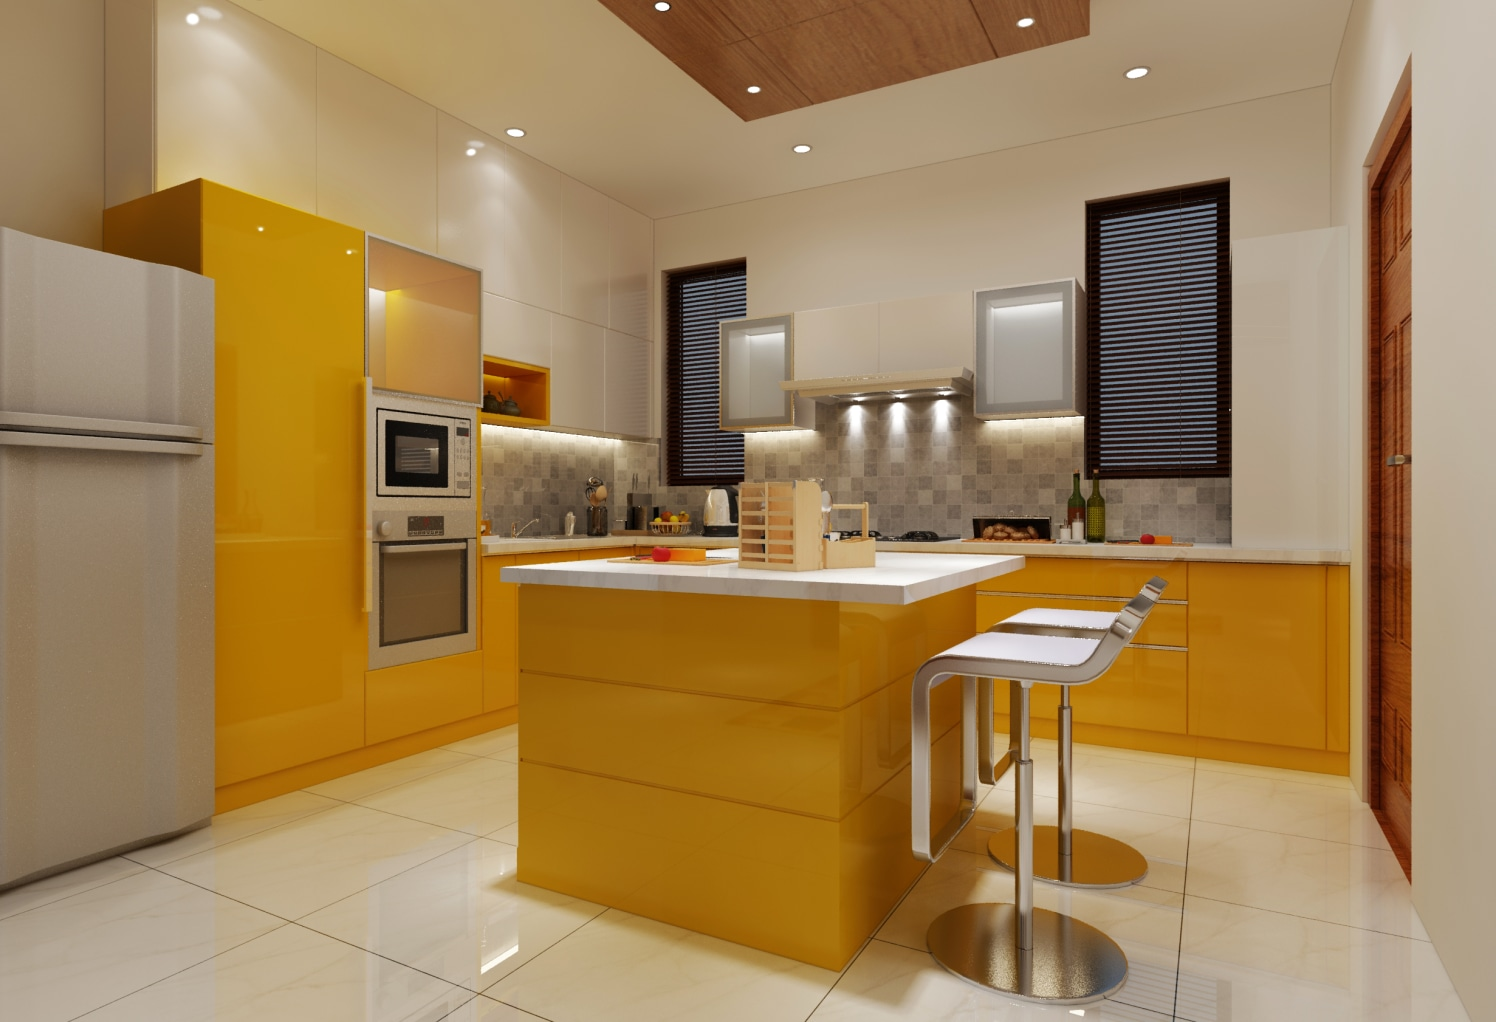 Bachelors Kitchen by Shwetha